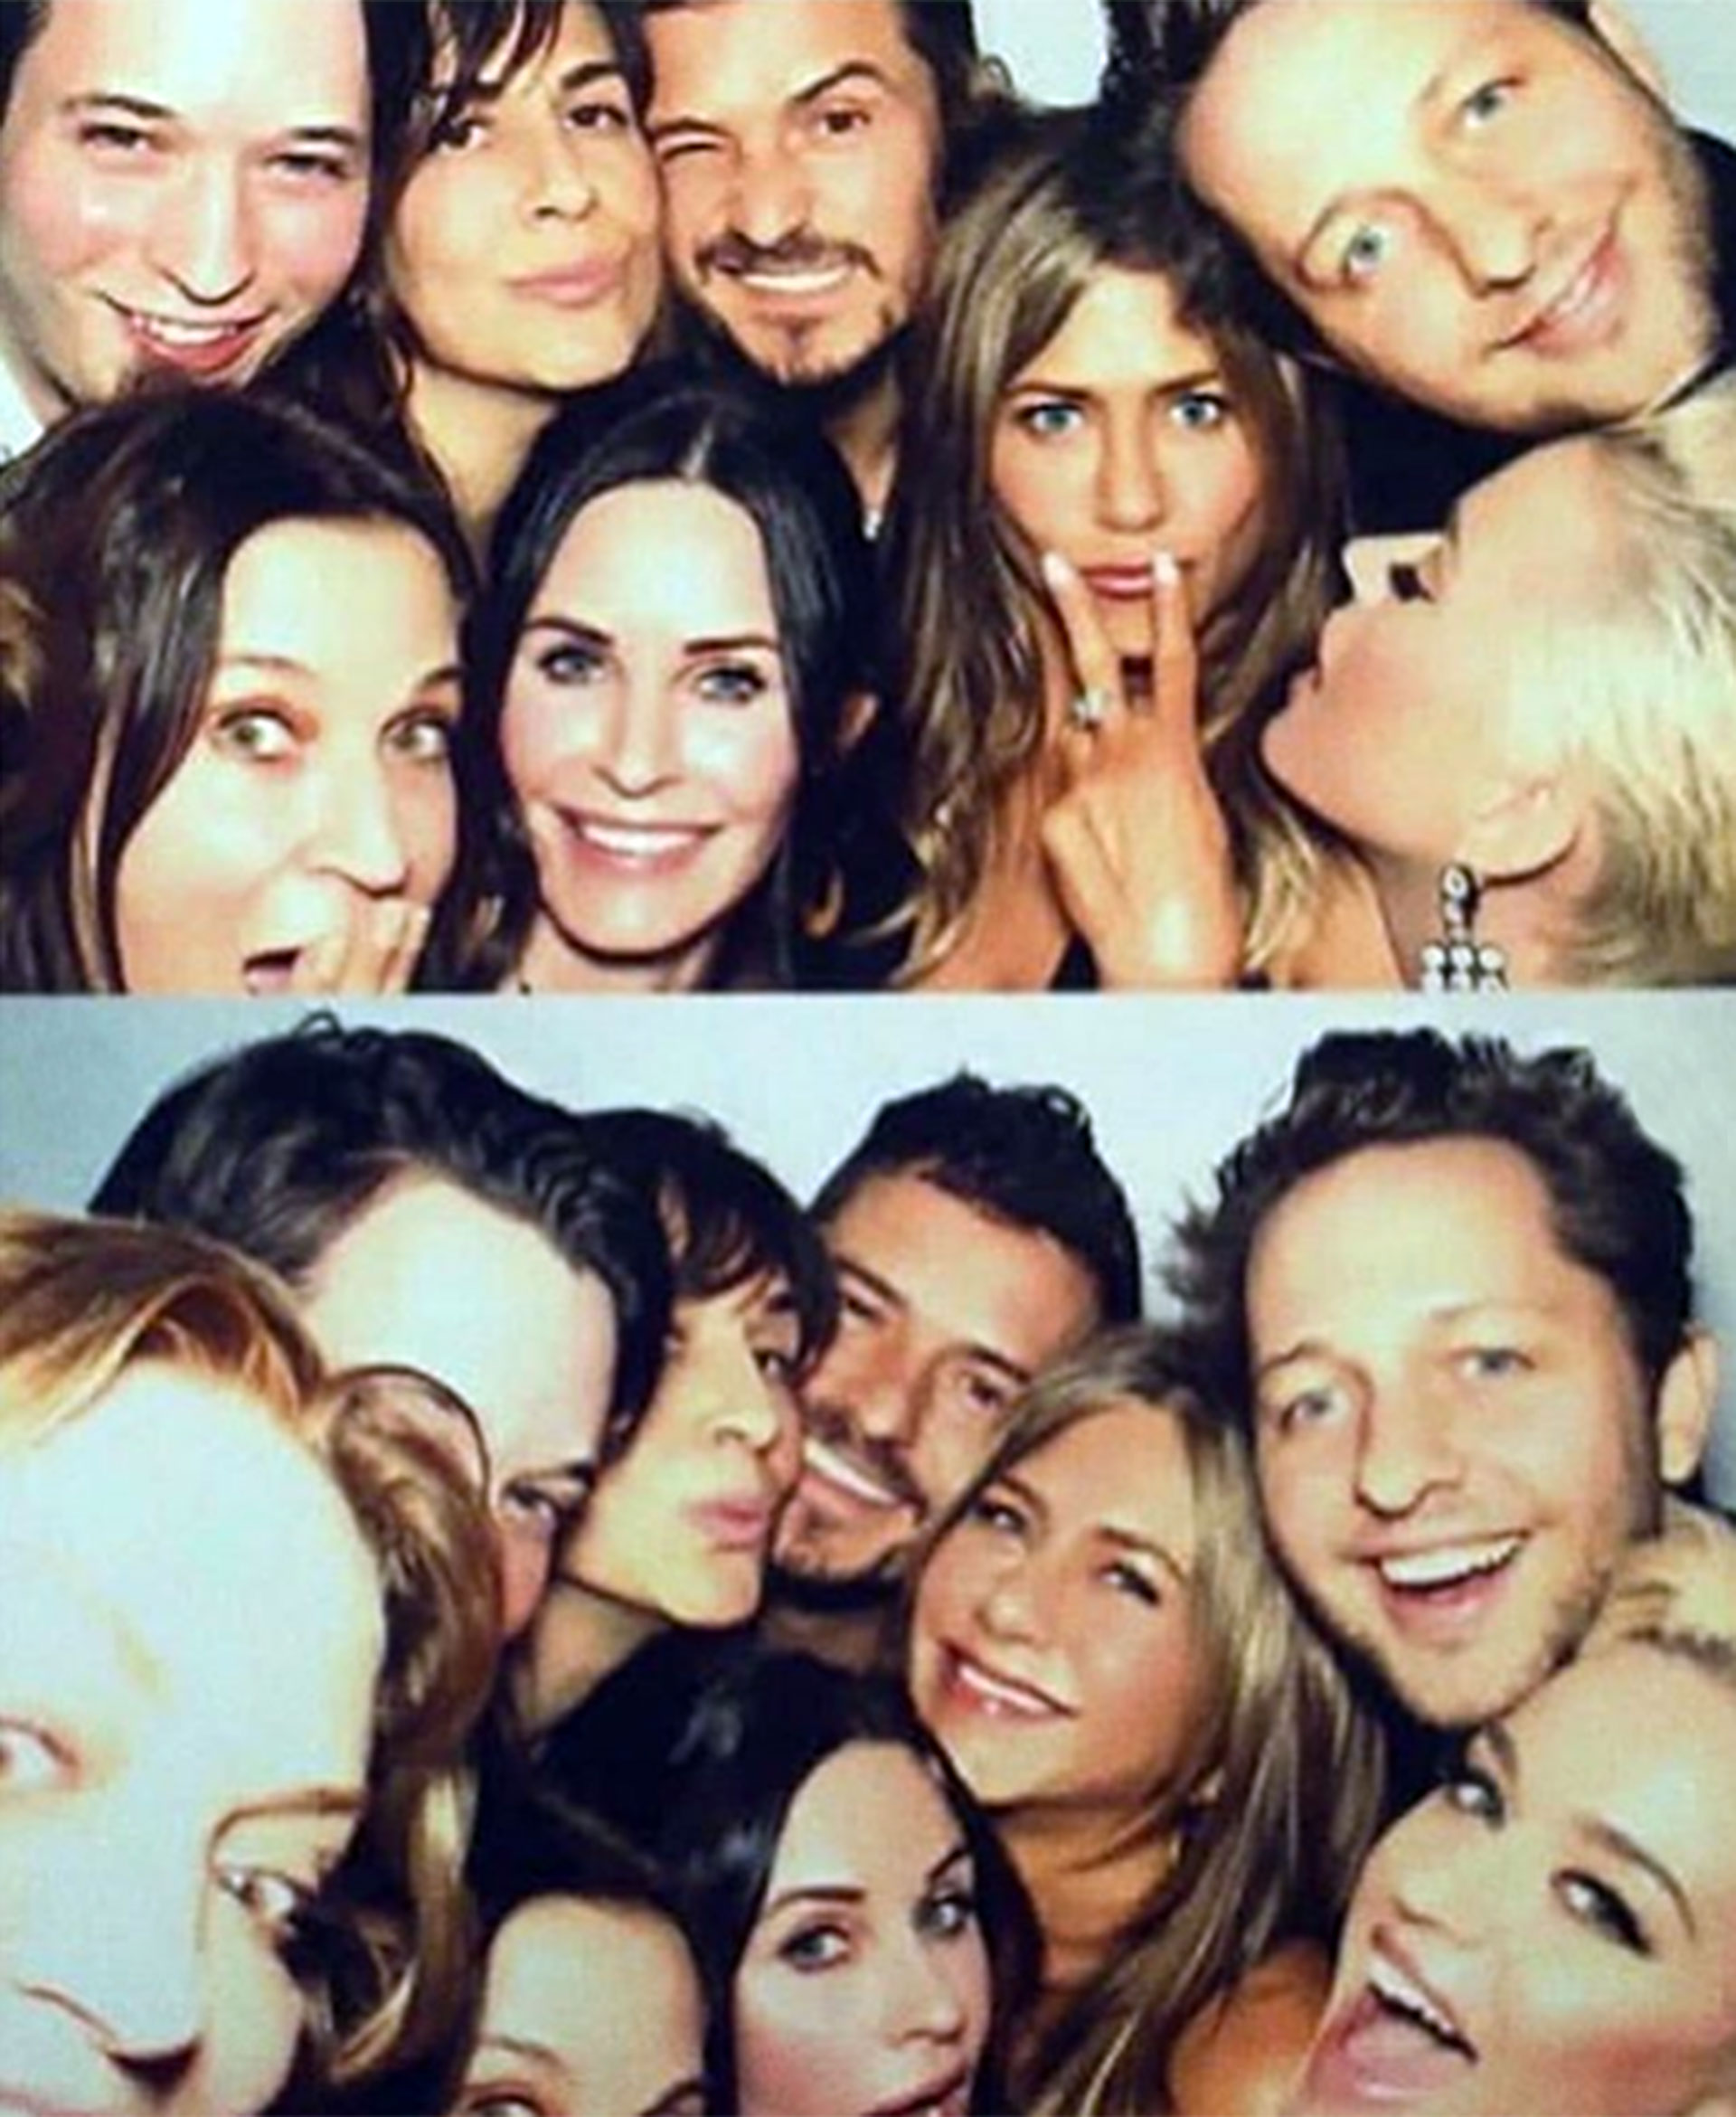 Jennifer Aniston con Orlando Bloom, Katy Perry y Courtnex Cox